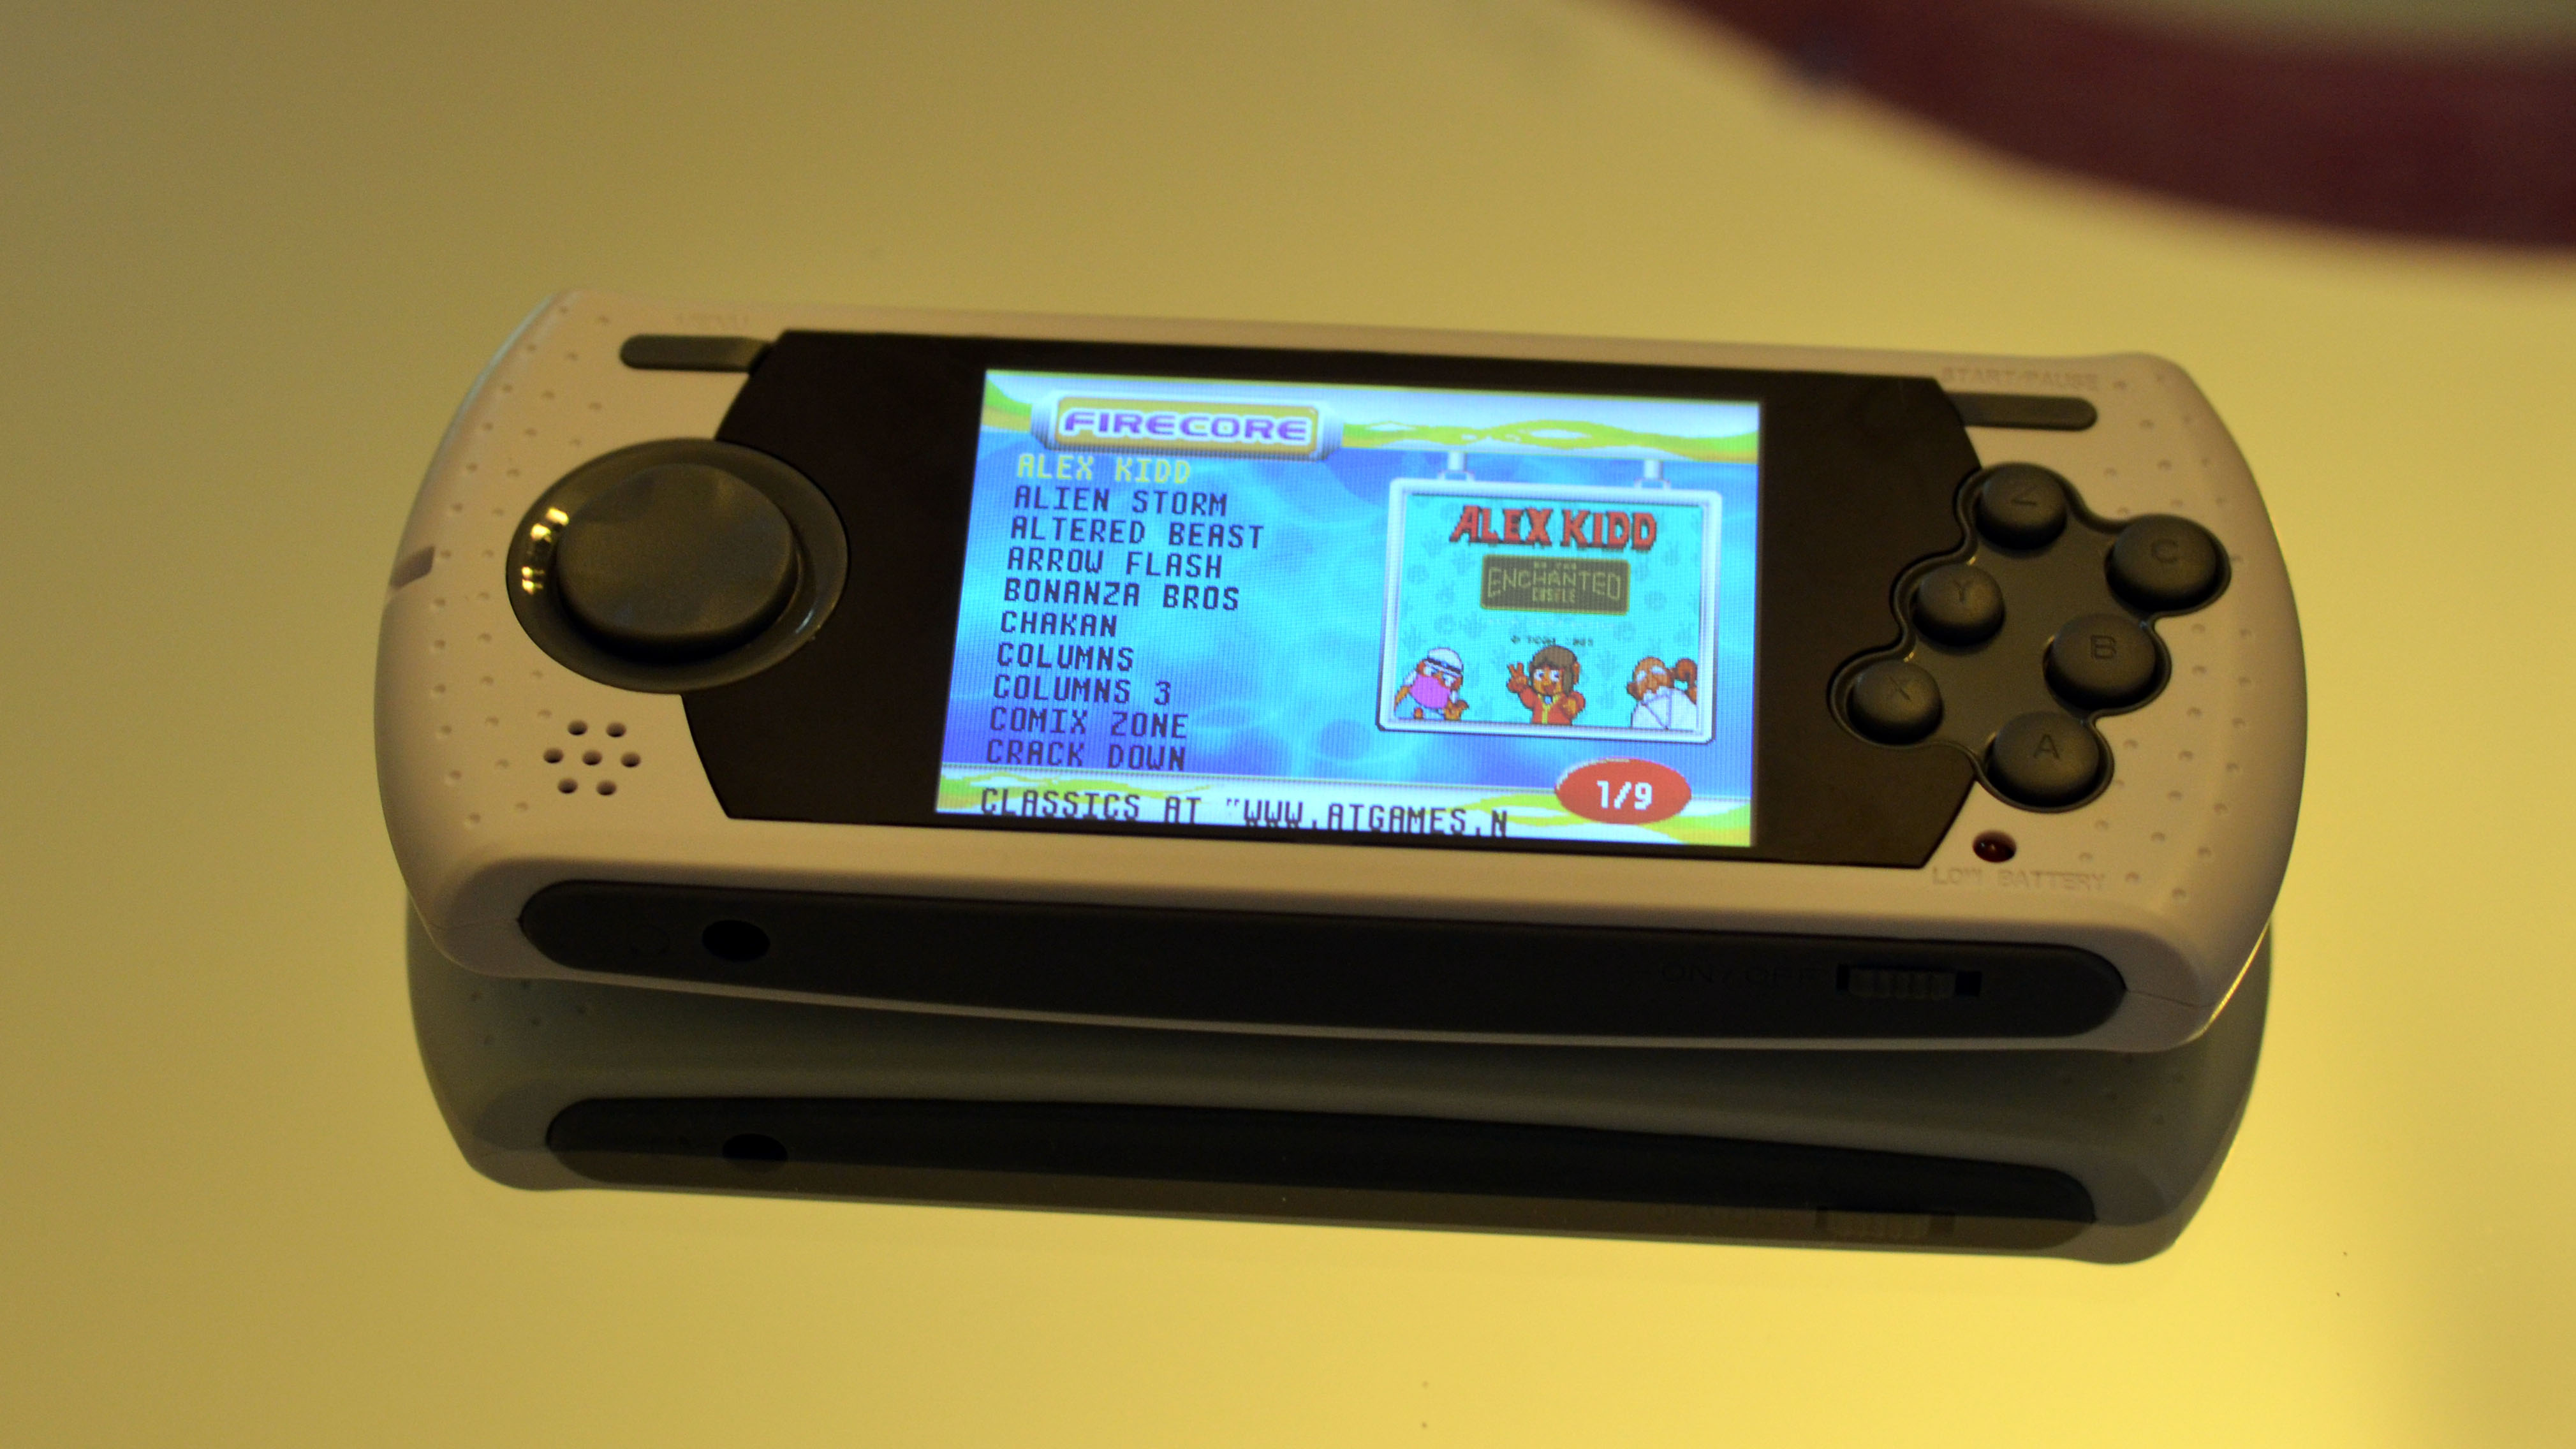 AtGames Video Game Handheld Systems for sale | In Stock | eBay